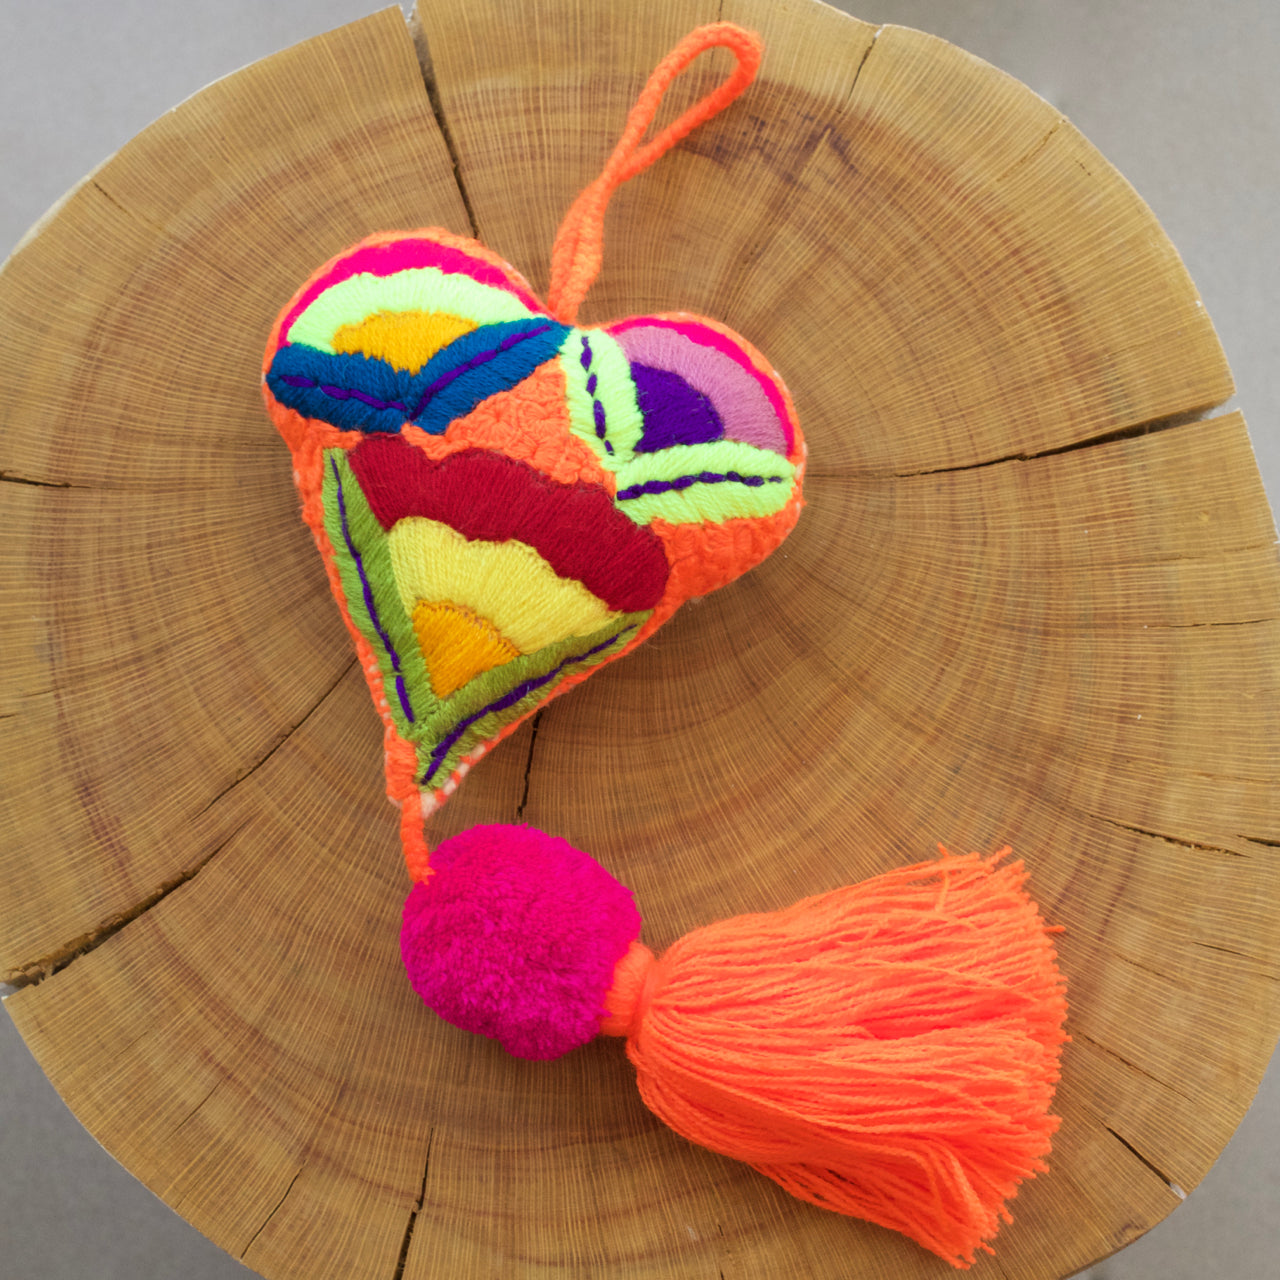 Corazon Pom Pom 27  Decor Orange - Cielo Collective handmade Mexico Guatemala